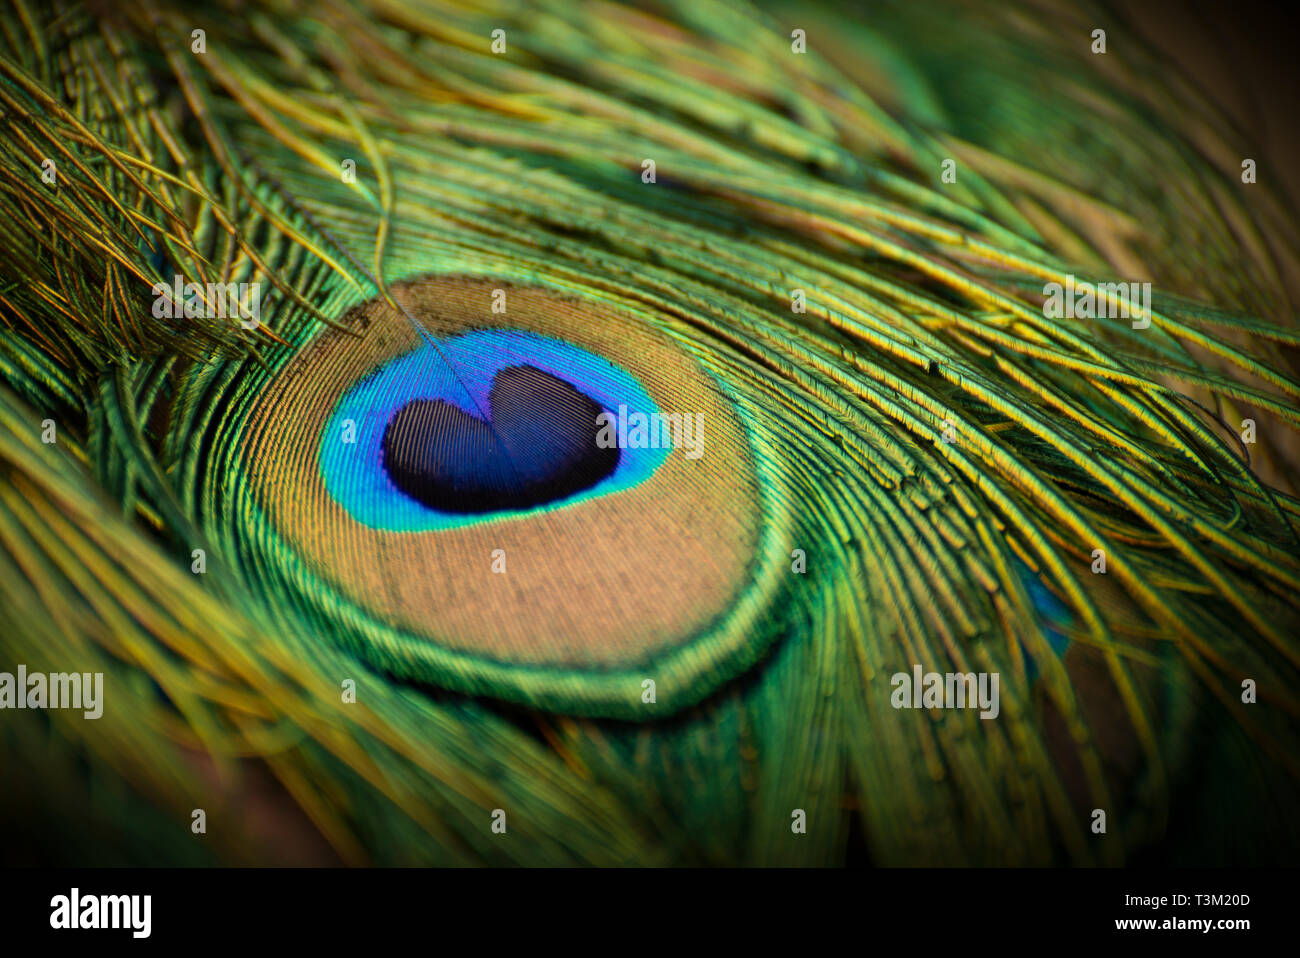 Indian Peafowl - Stock Image